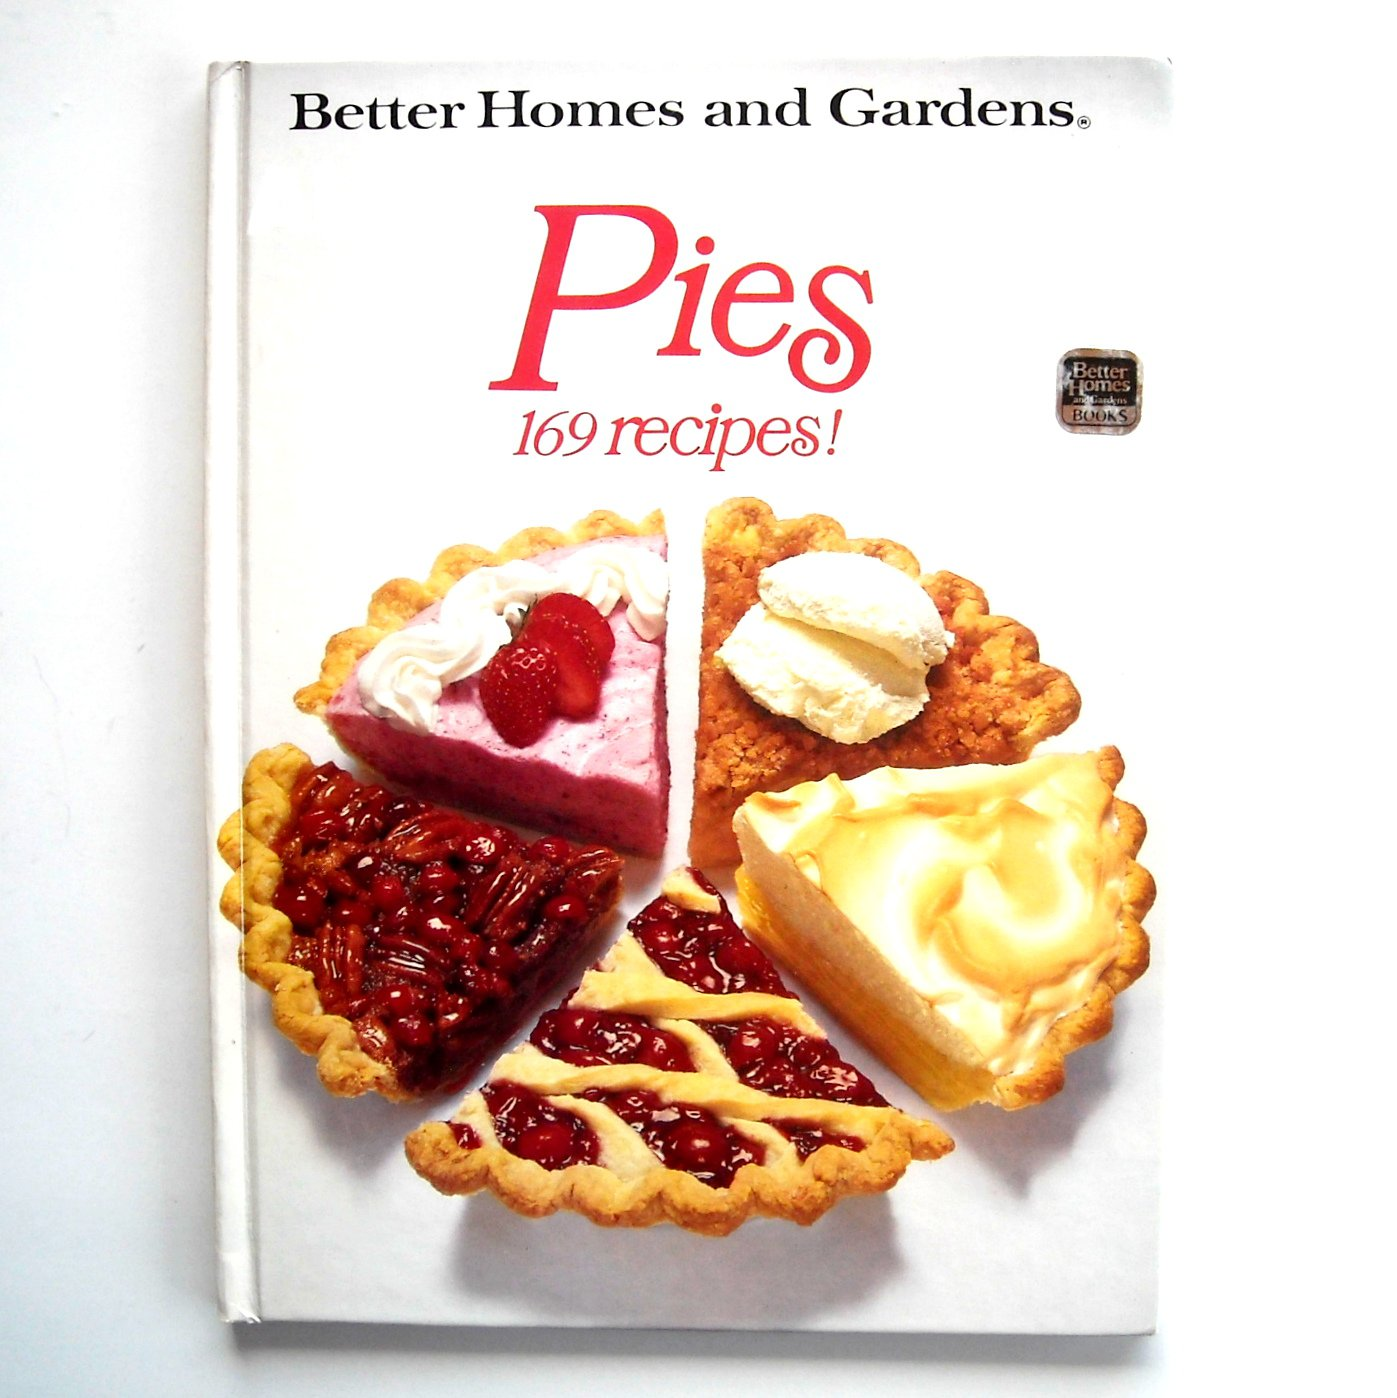 Pies recipes better homes and gardens book for Home and garden recipes